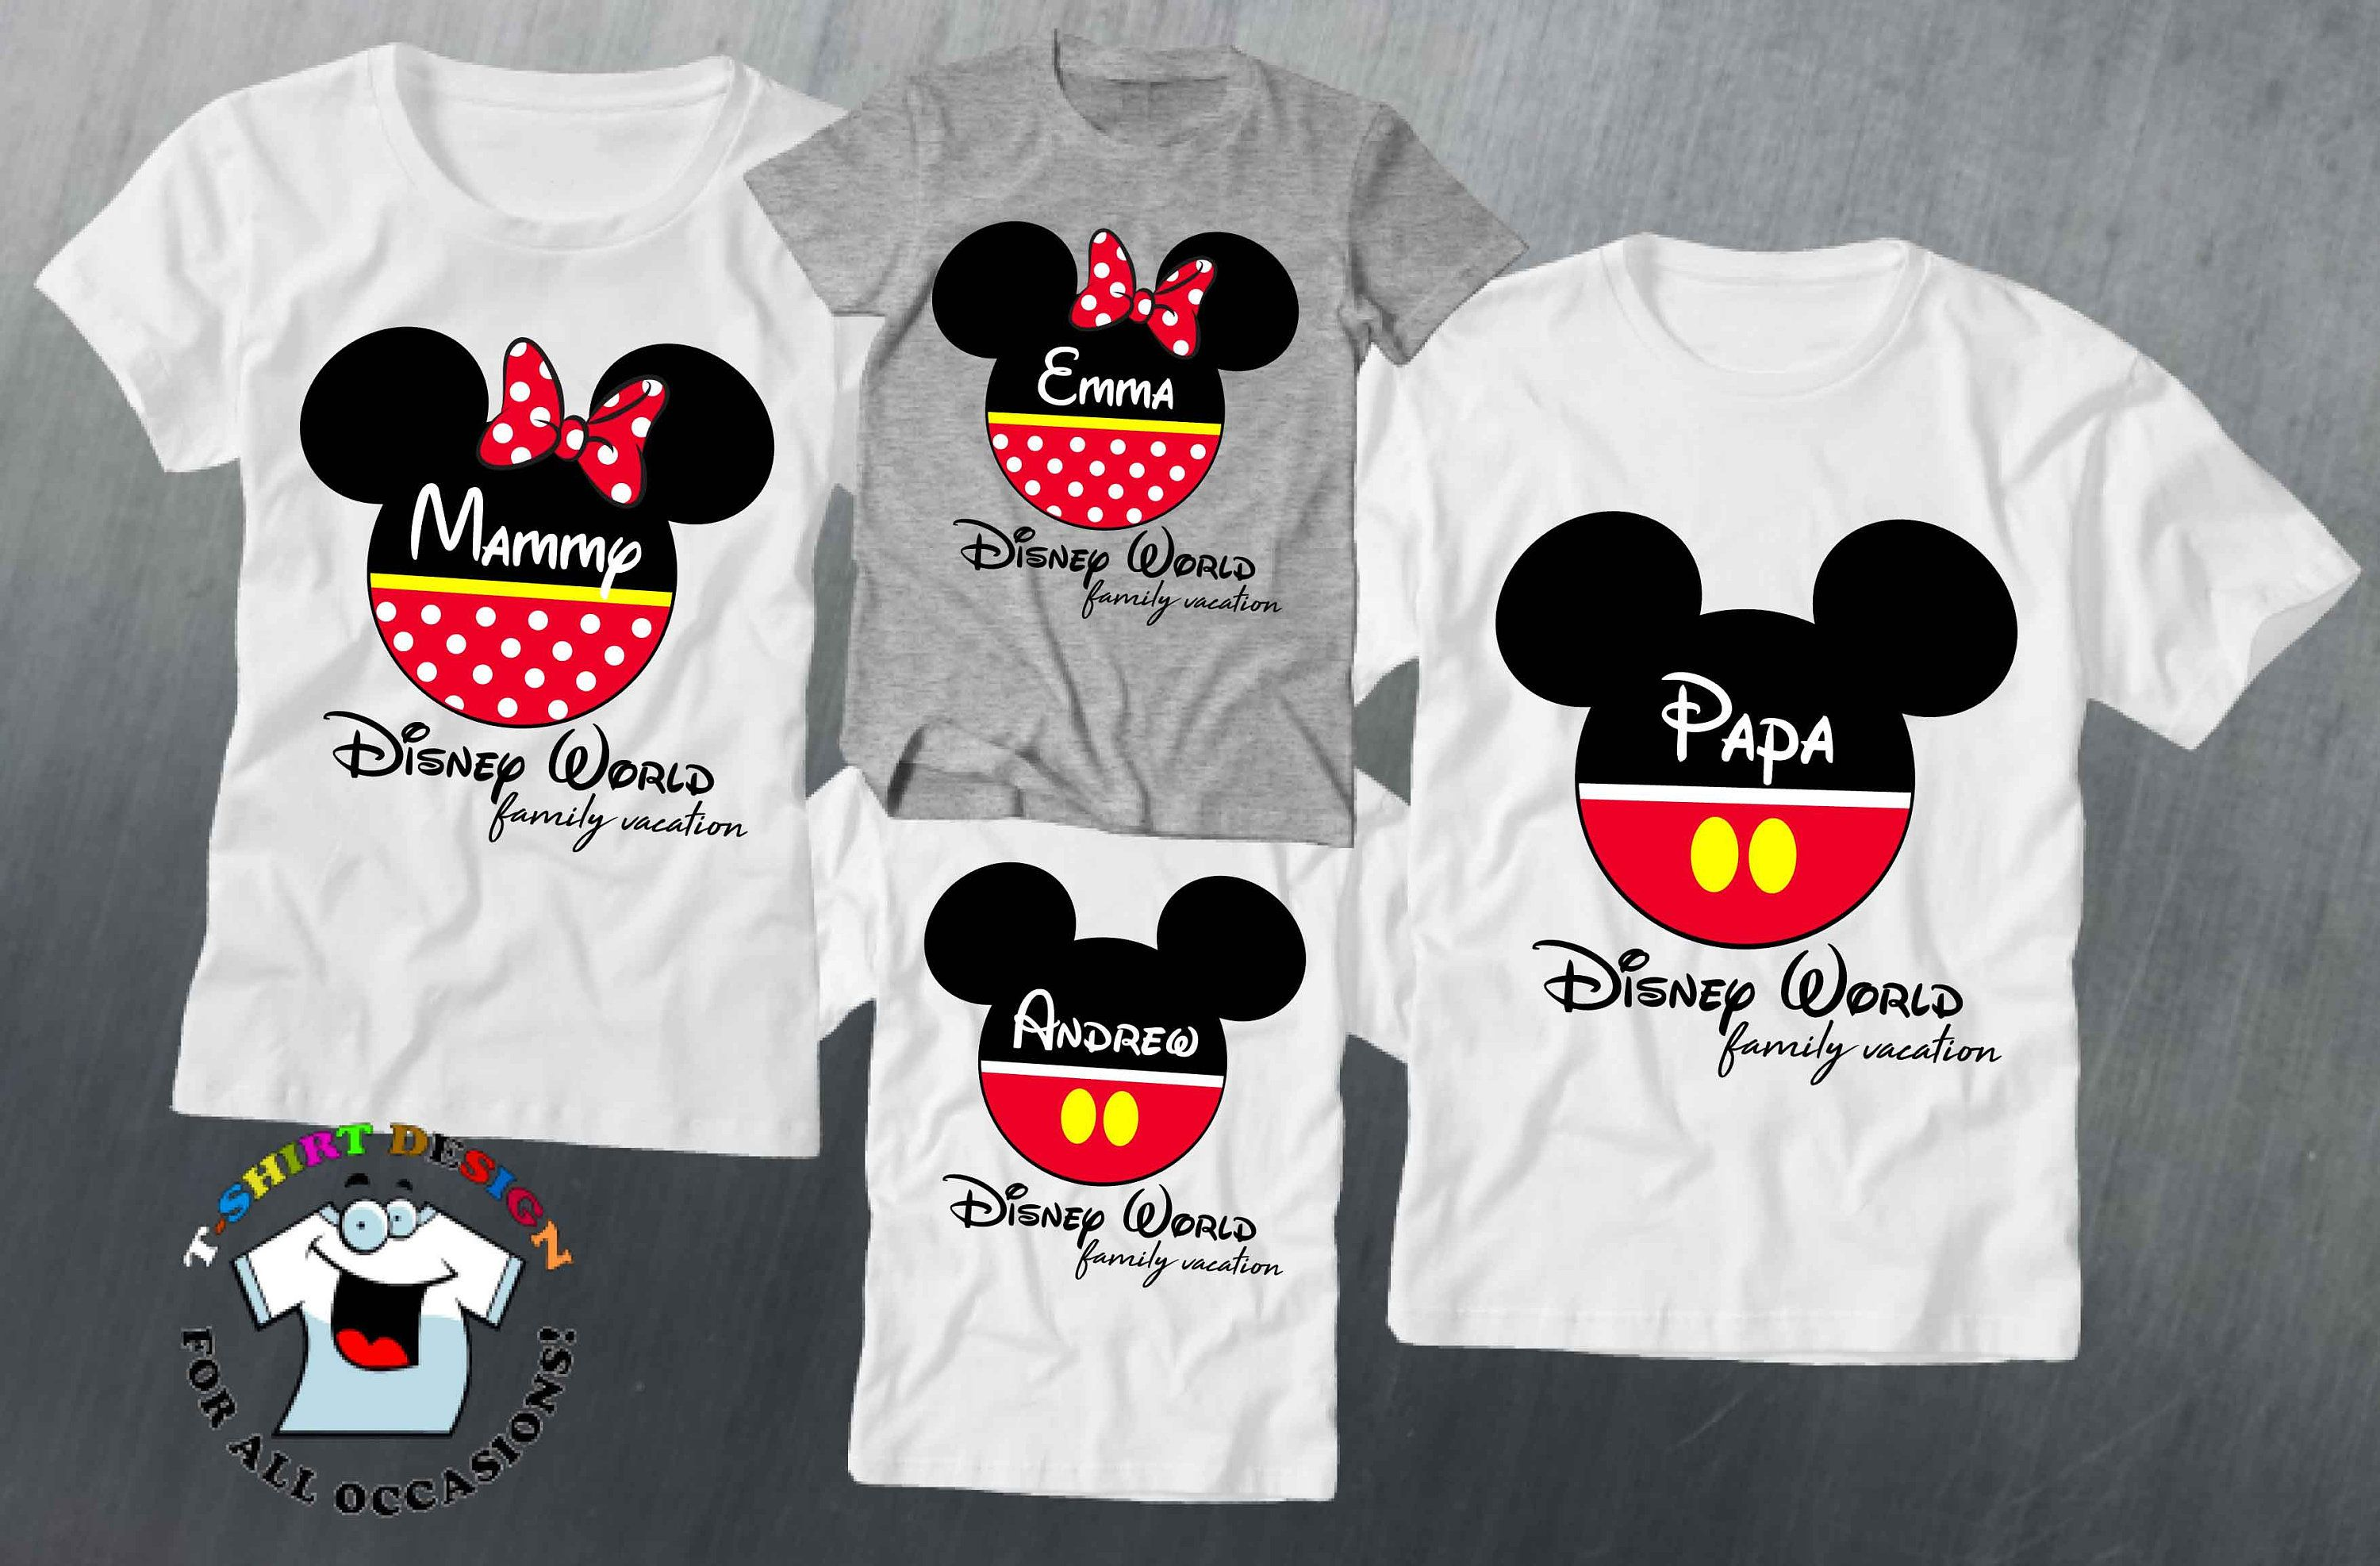 Straight Outta Disney Shirt For Family Vacation To Disney World Disney Land Mickey Mouse Disney Shirt Disney Vacation Best Selling Items